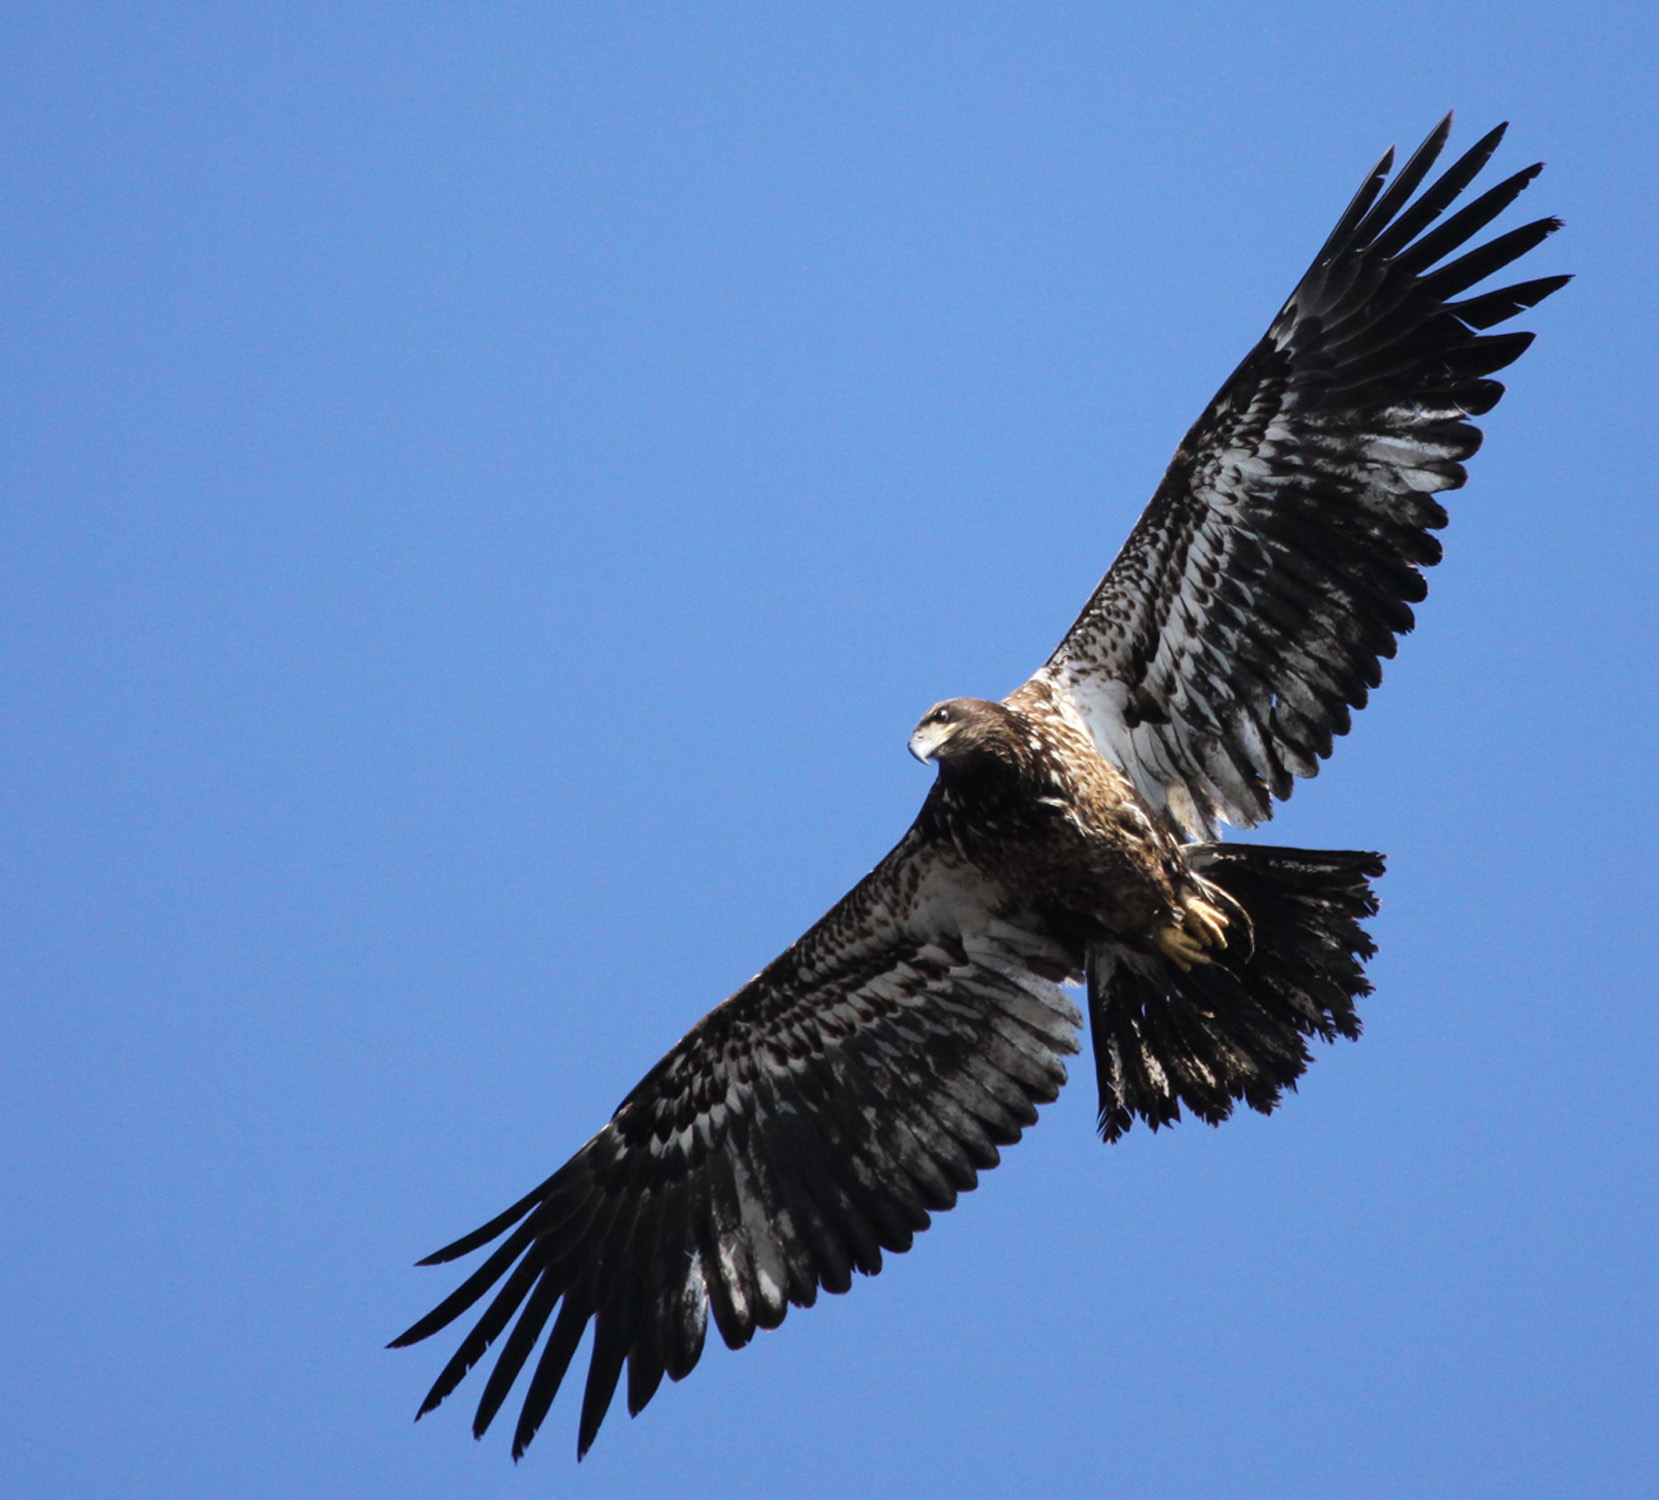 Joppa immature bald eagle photo by David LarsonBAEA-imm1-DLarson